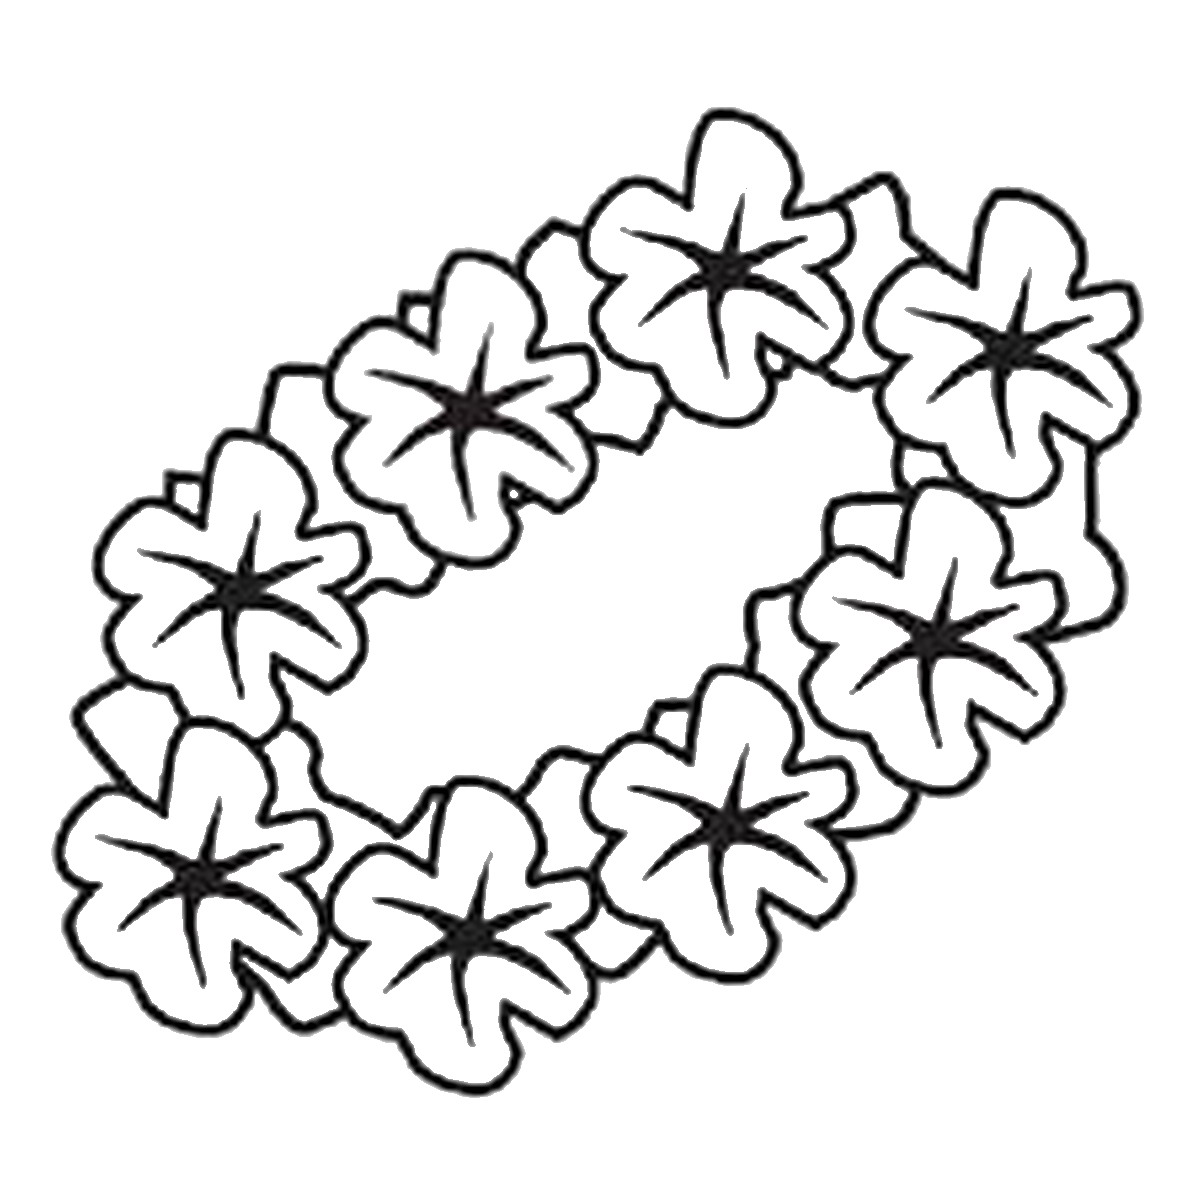 luau coloring pages luau coloring pages birthday printable pages luau coloring